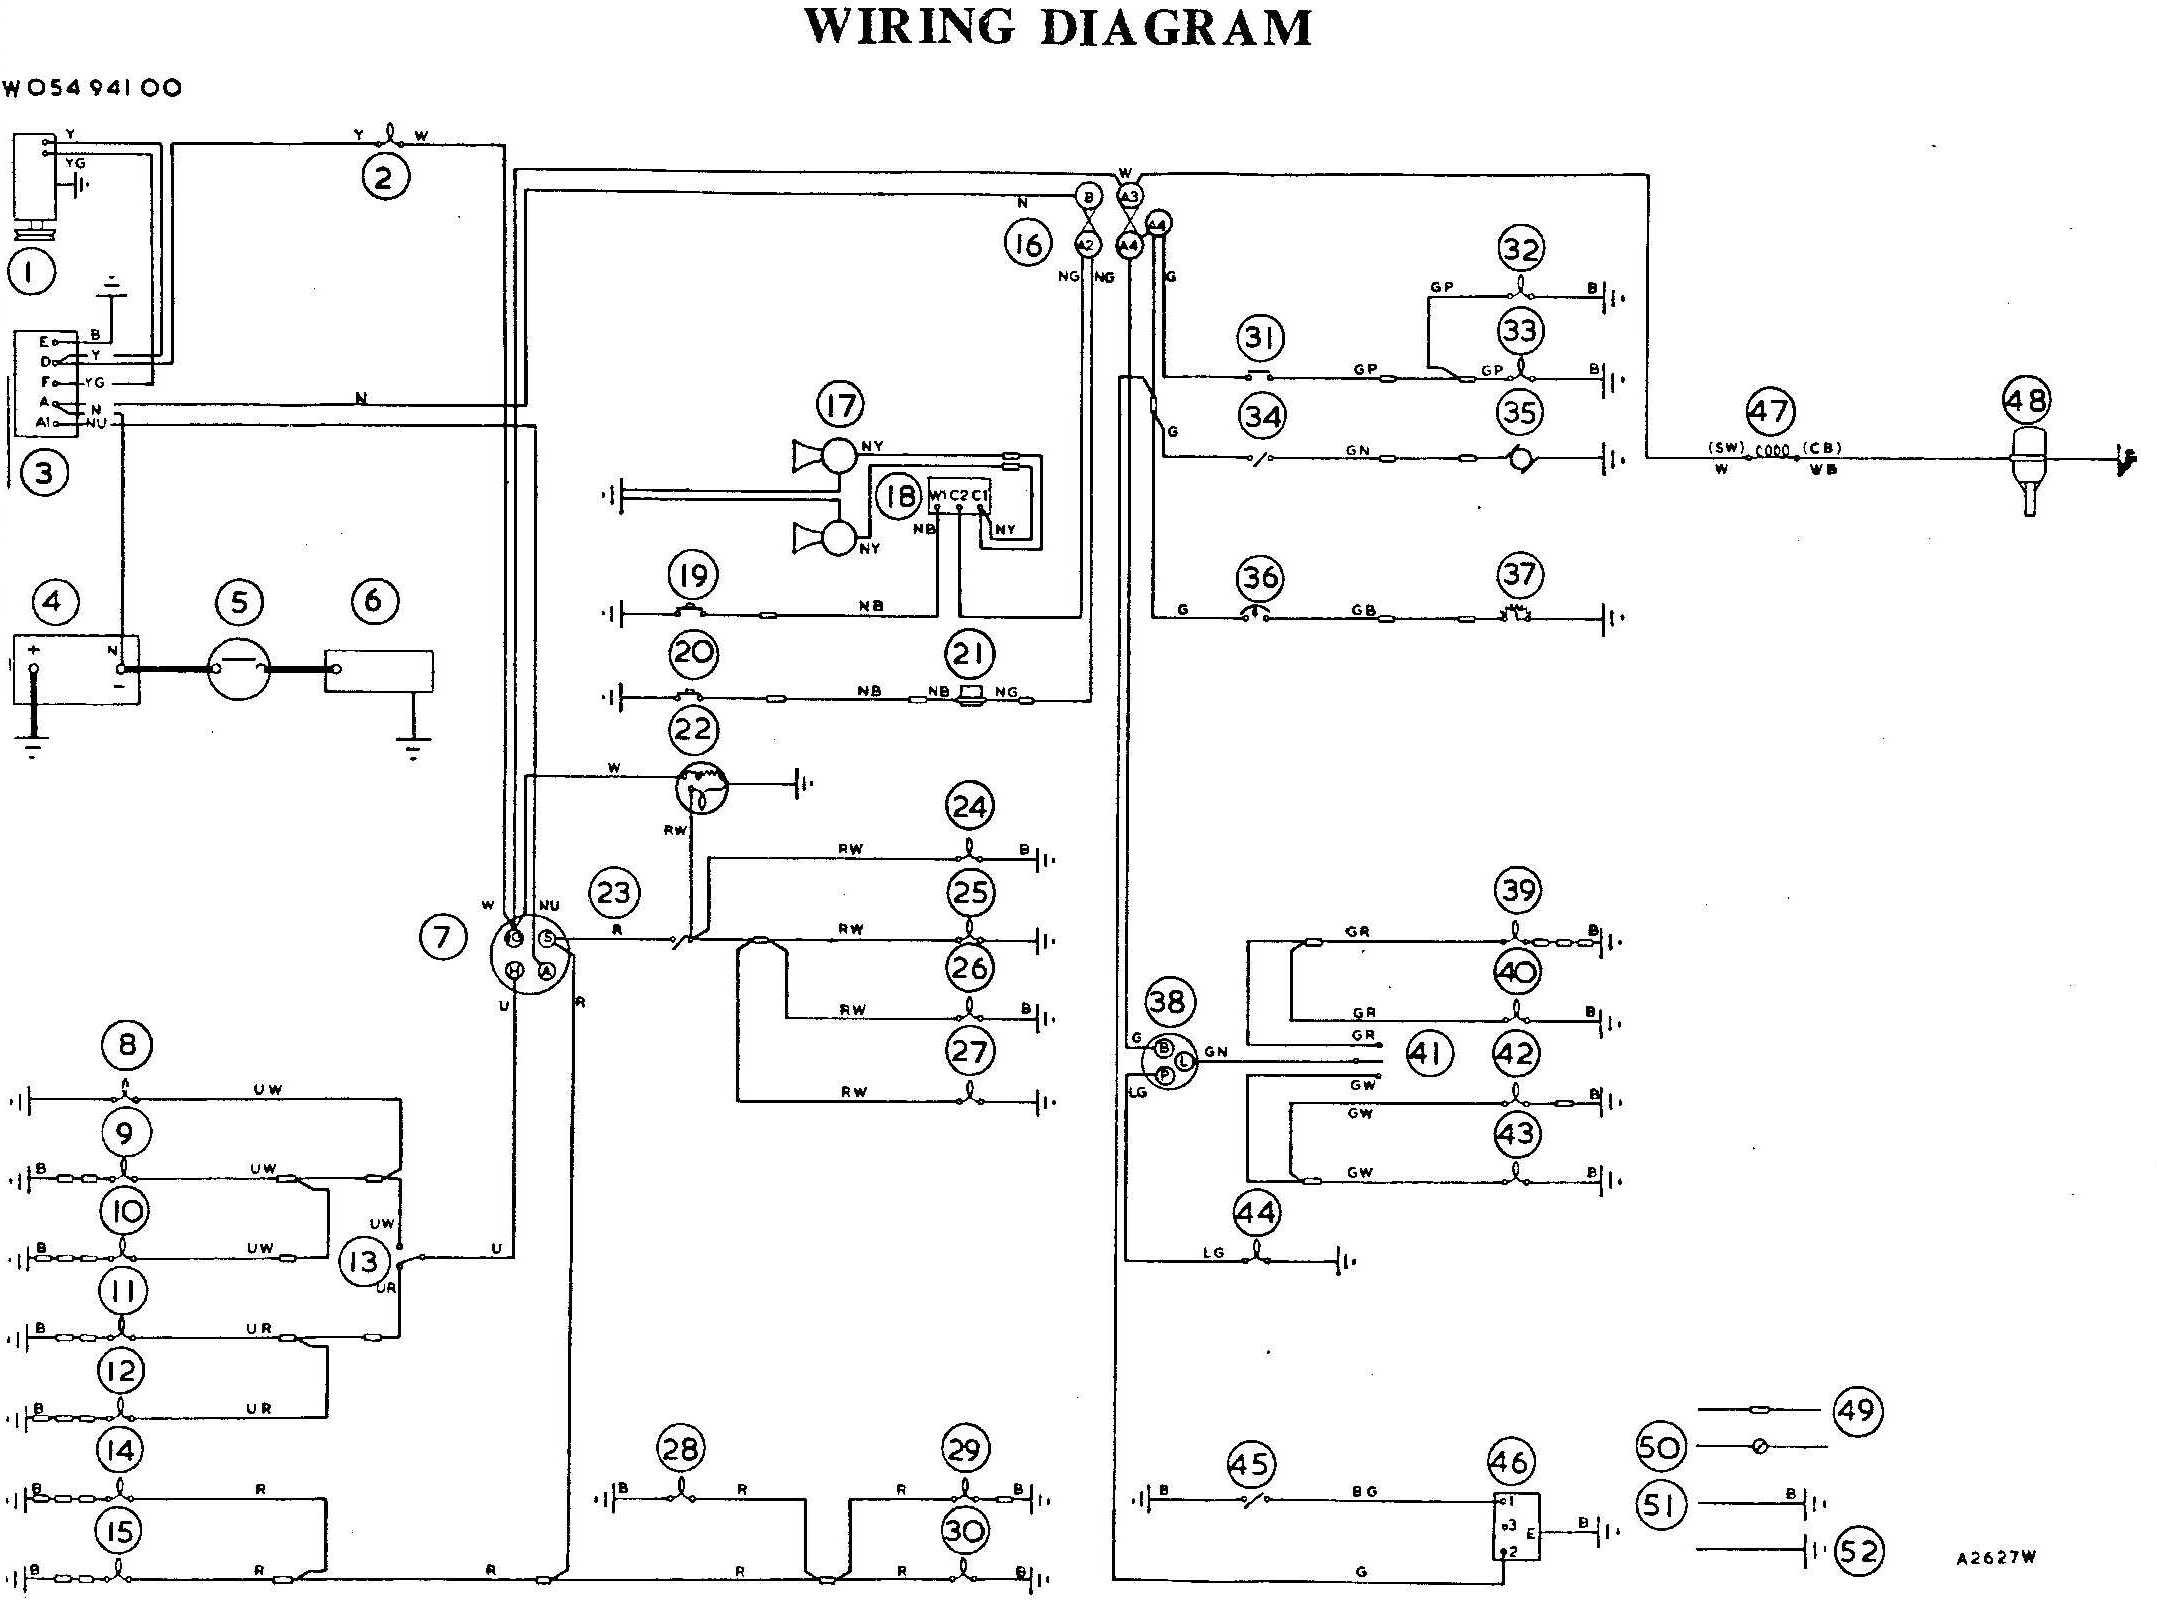 M1008 Wiring Diagram Under Dash - Wiring Diagram Fascinating on